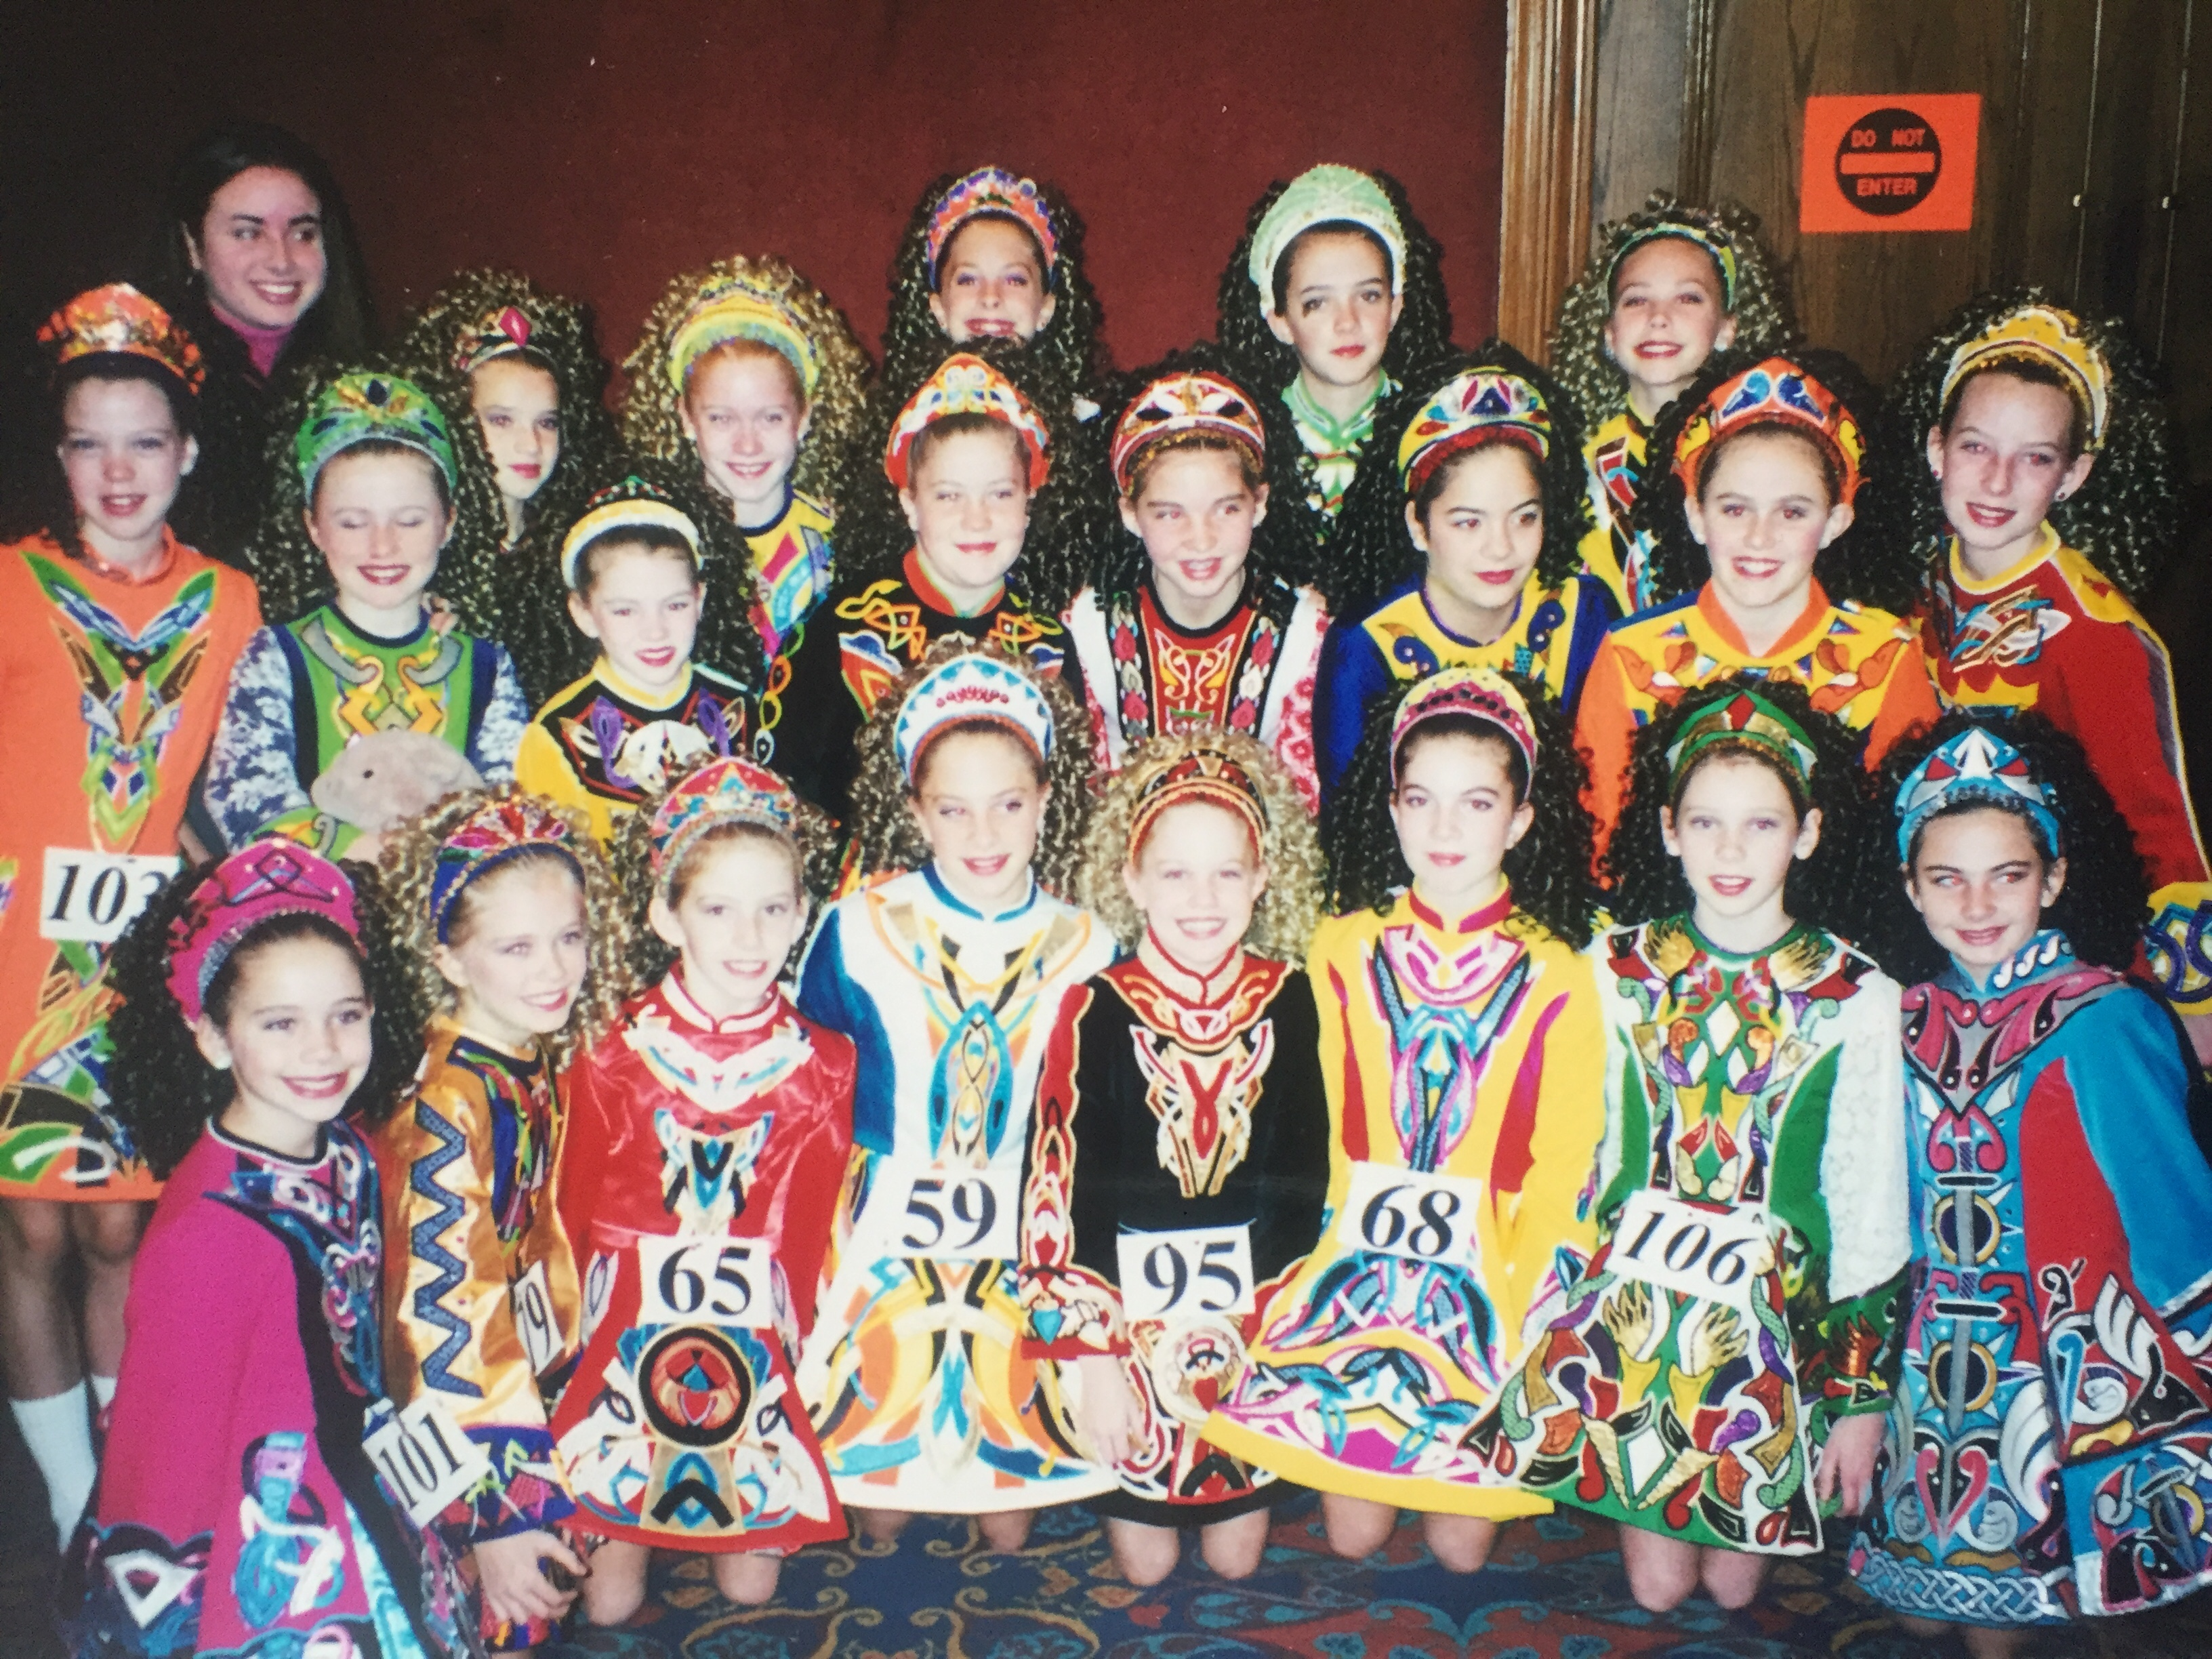 Young girls in Irish step dancing dresses